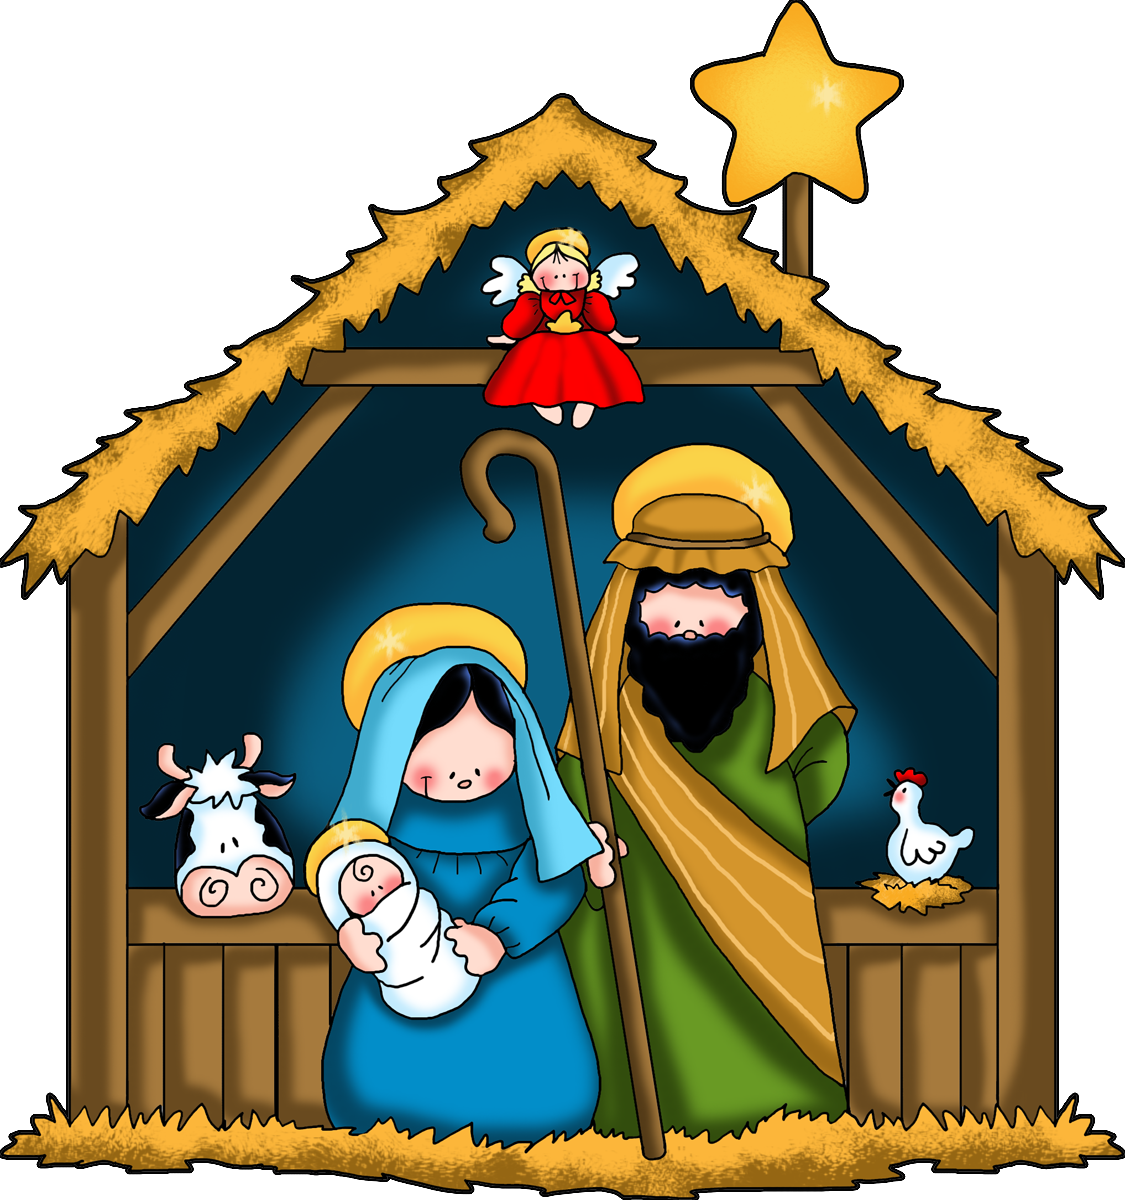 Christmas nativity images clipart images gallery for free download.